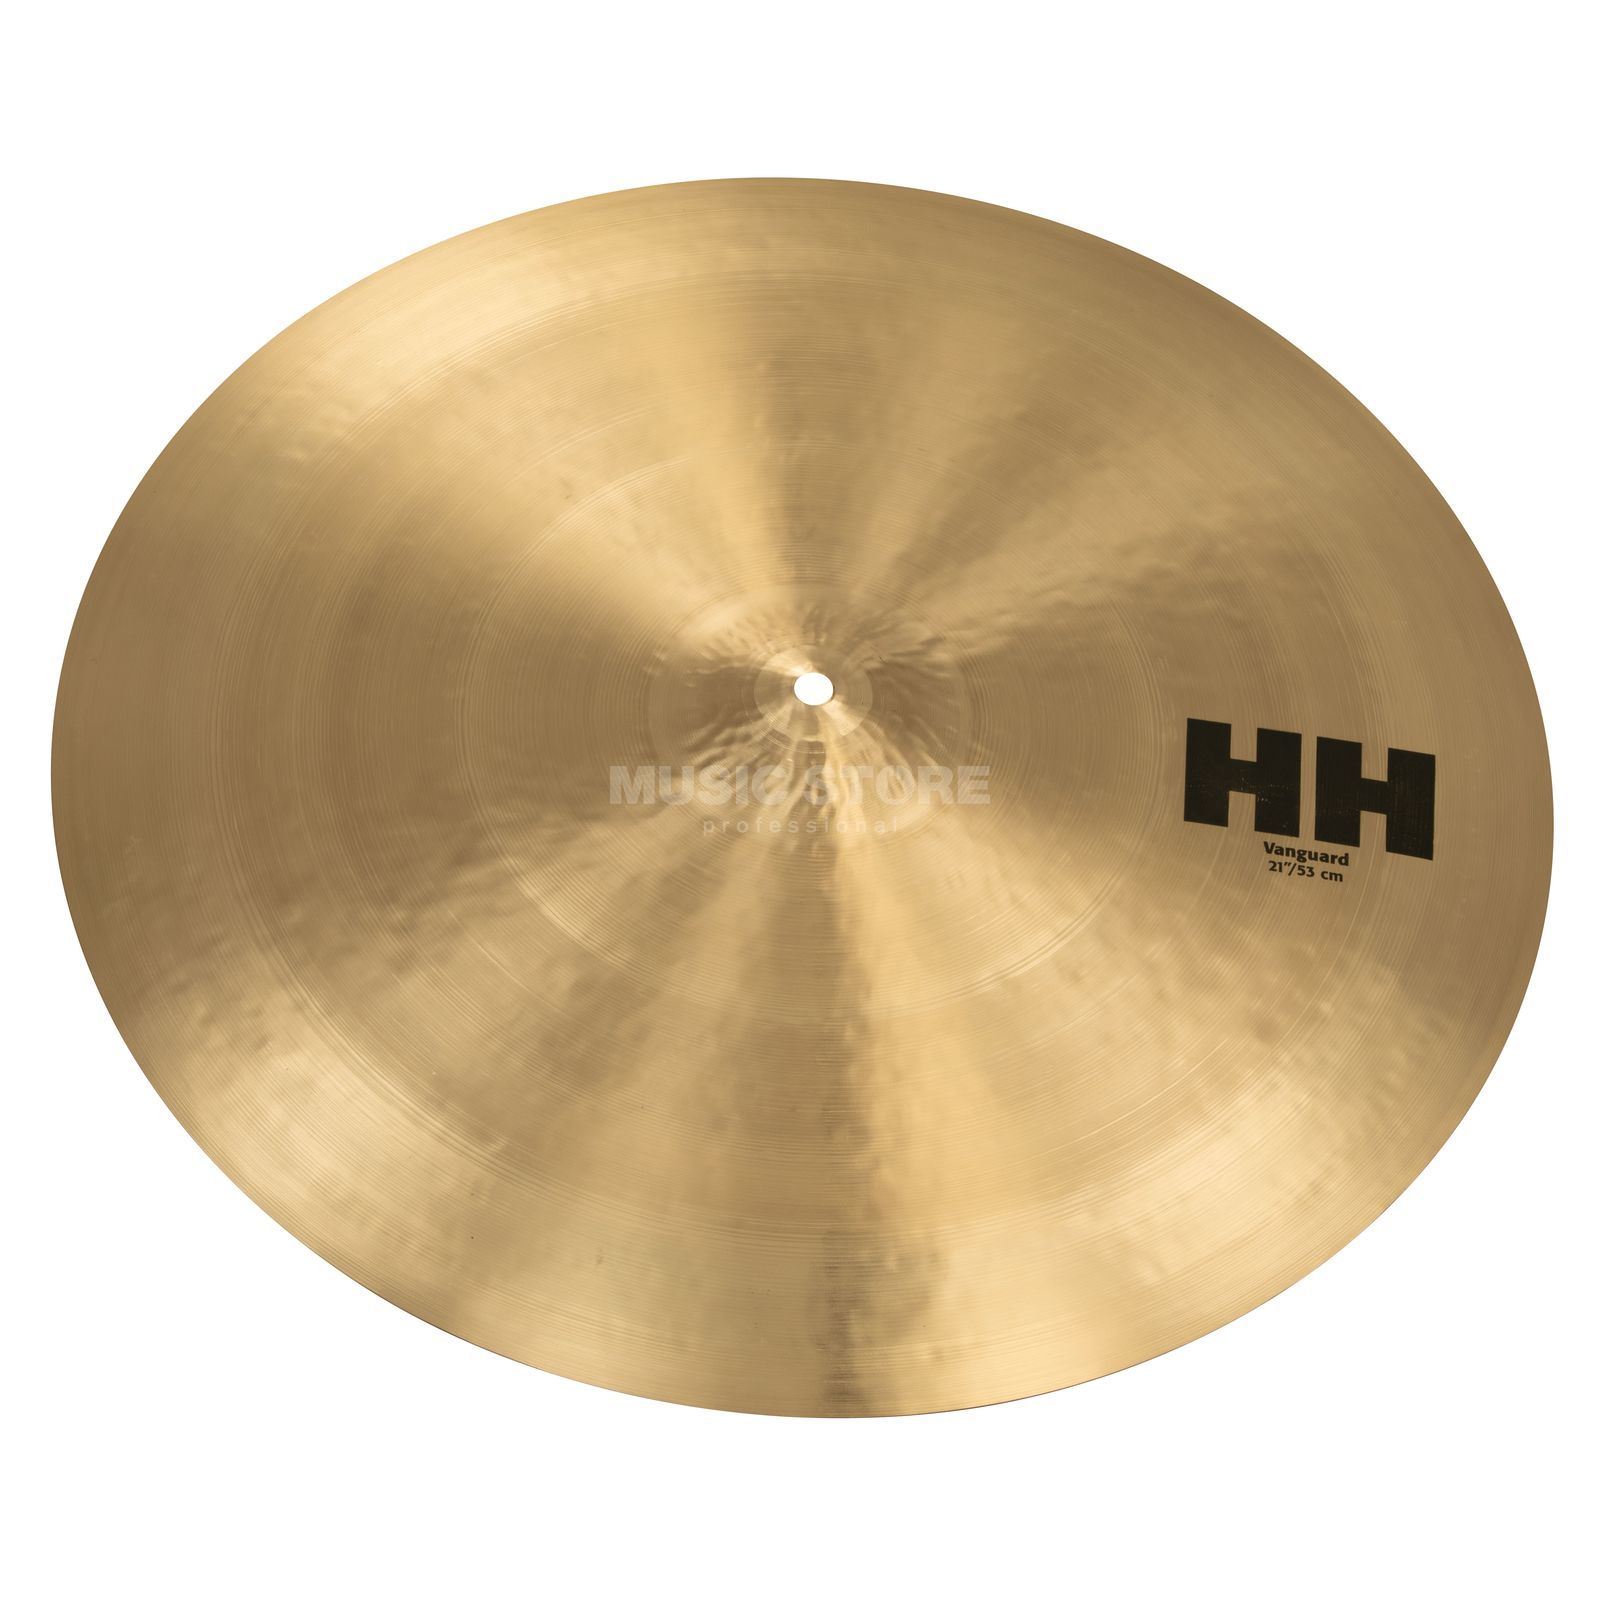 "Sabian HH Vanguard Ride 21"", Remastered Produktbild"